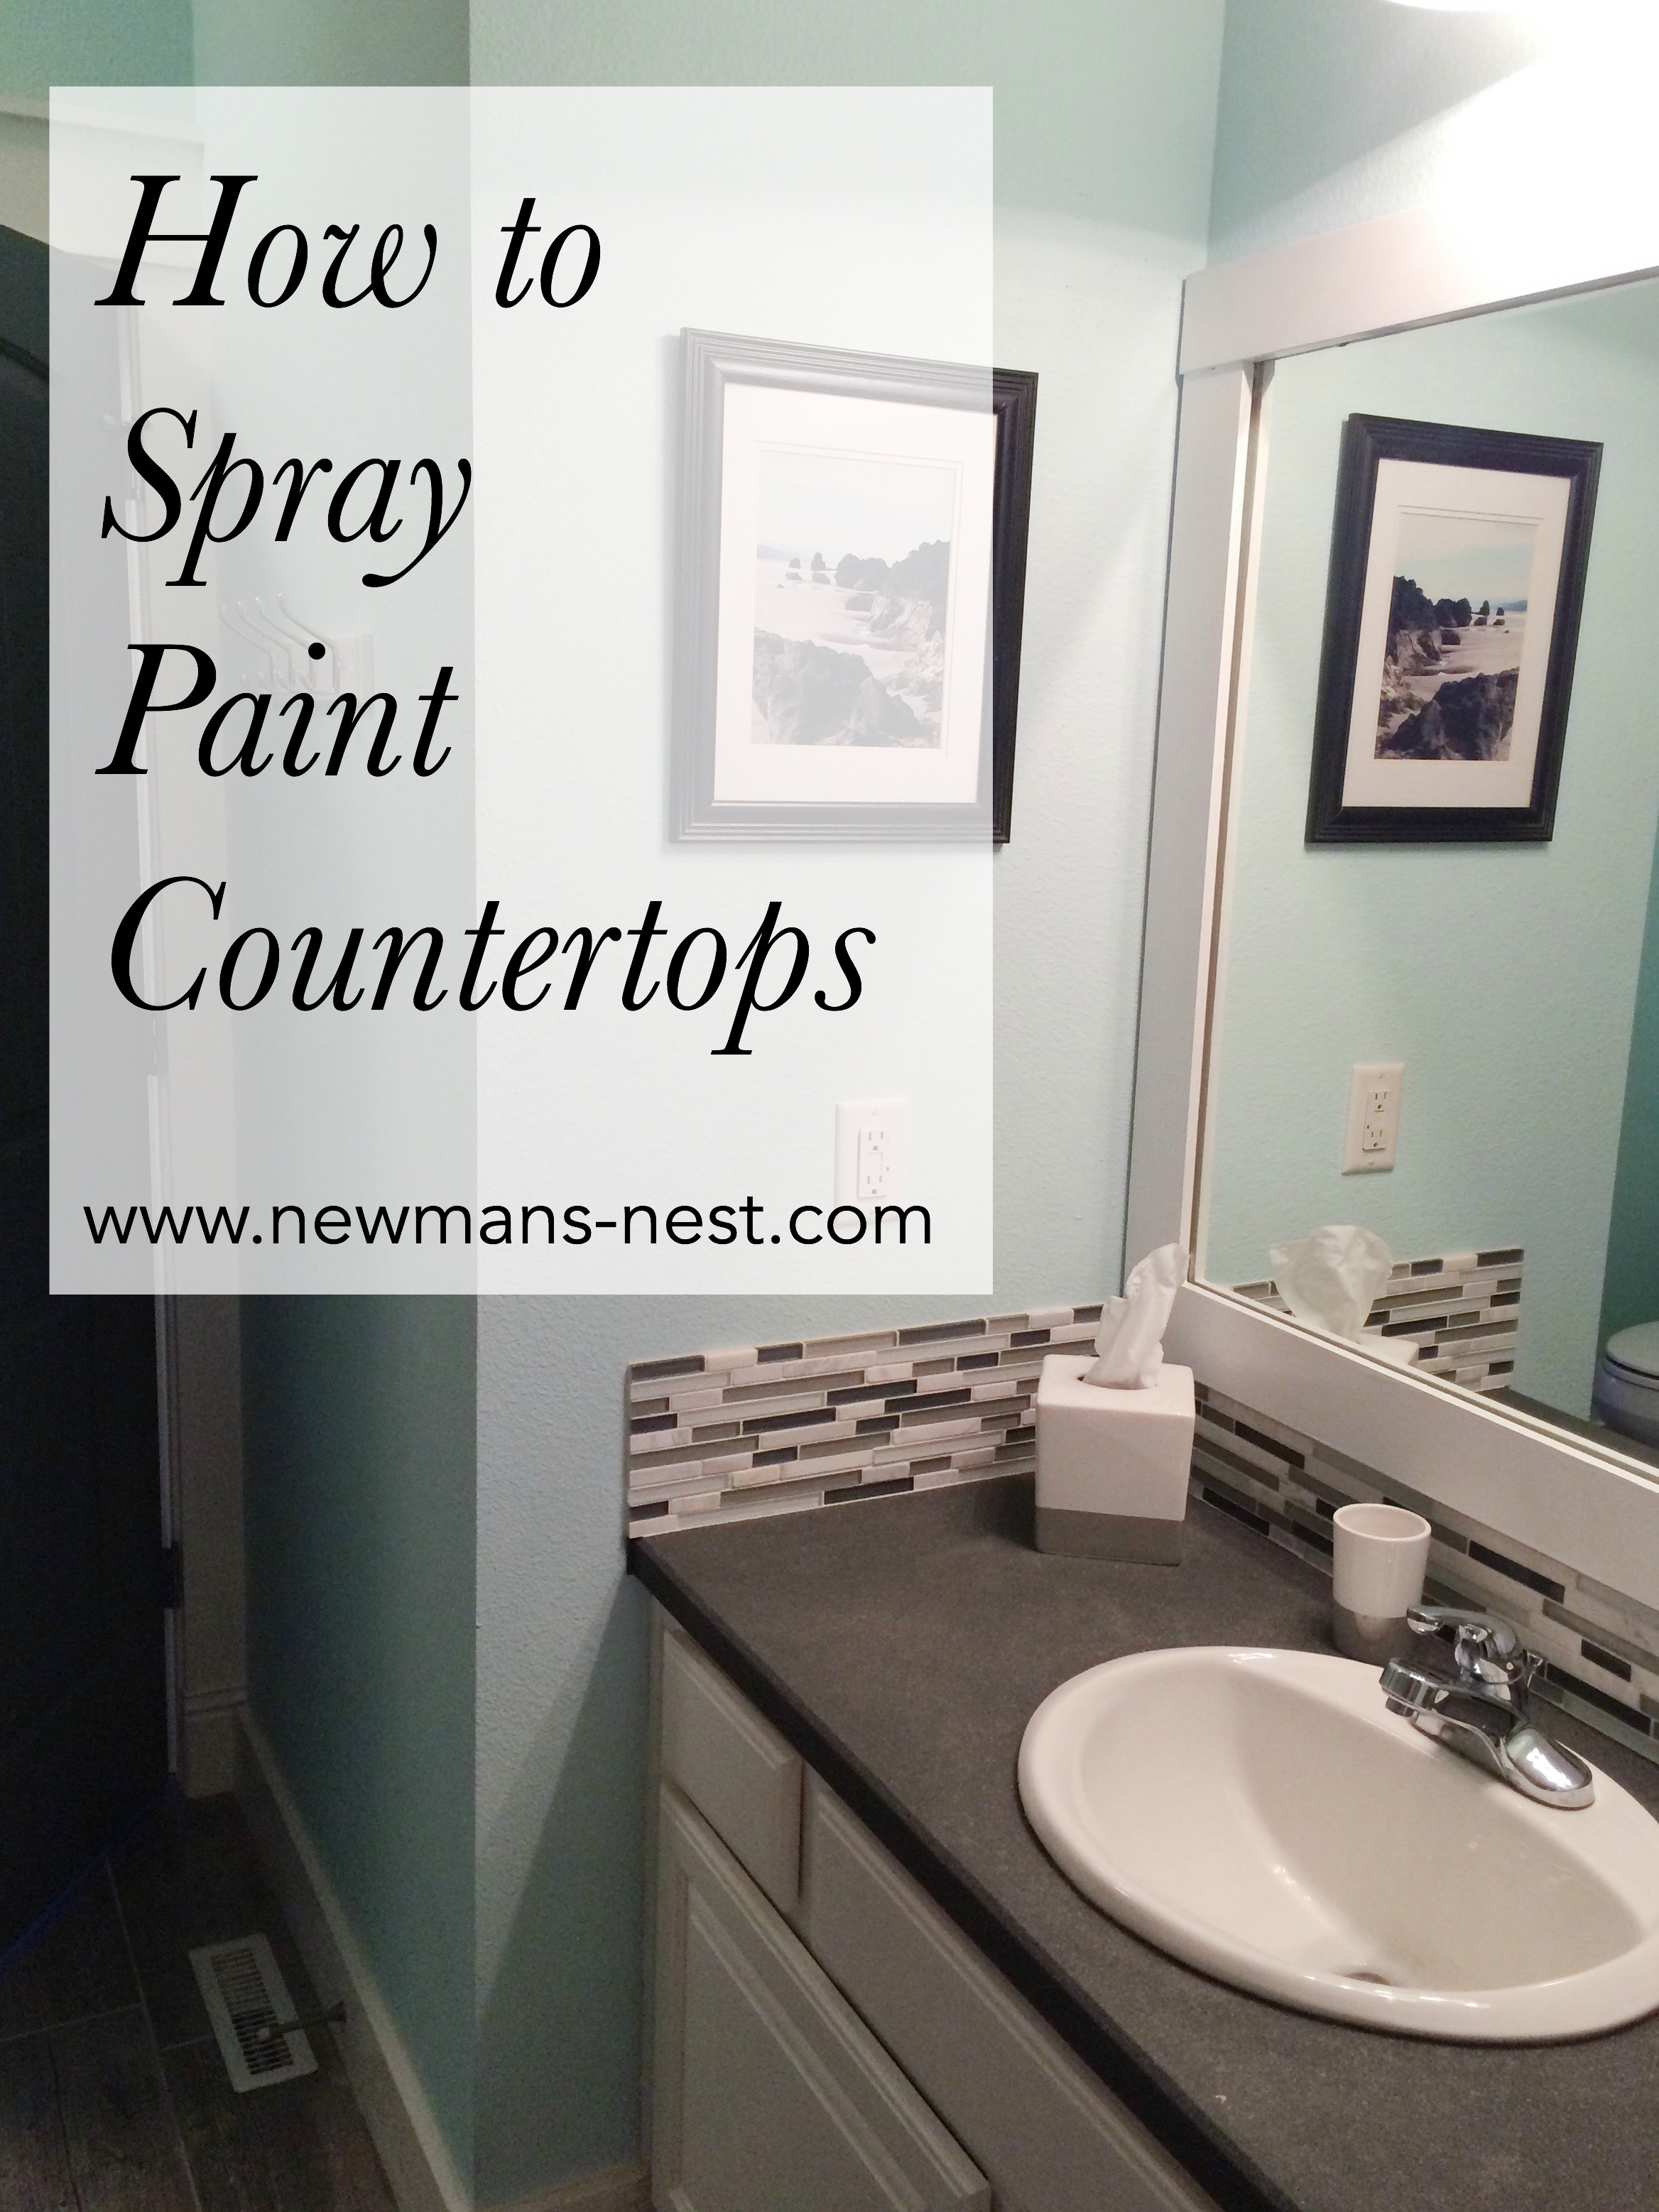 Spray Painted Countertops Newmans Nest - Can you paint a bathroom sink